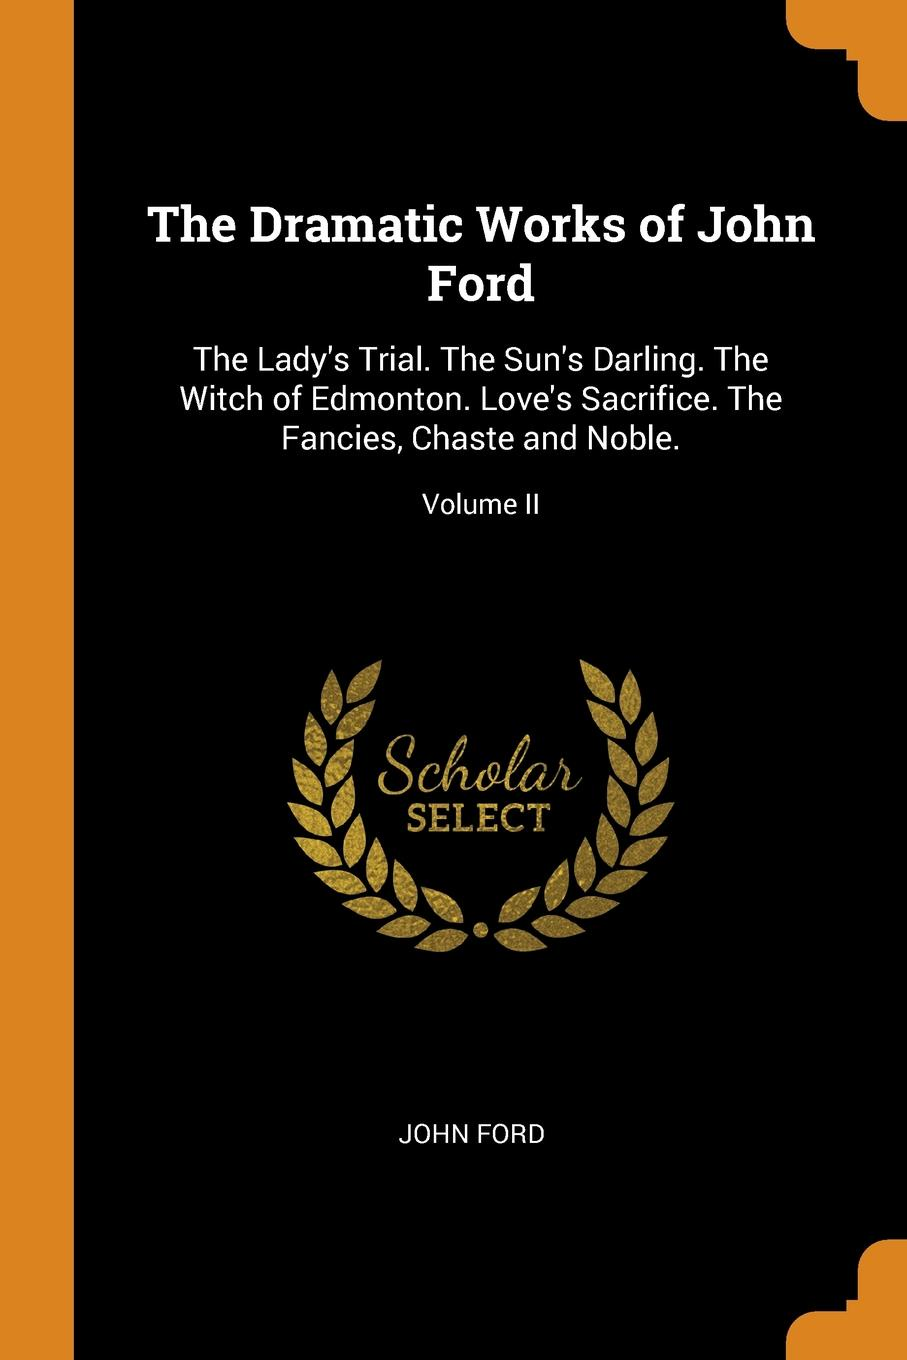 John Ford The Dramatic Works of John Ford. The Lady.s Trial. The Sun.s Darling. The Witch of Edmonton. Love.s Sacrifice. The Fancies, Chaste and Noble.; Volume II